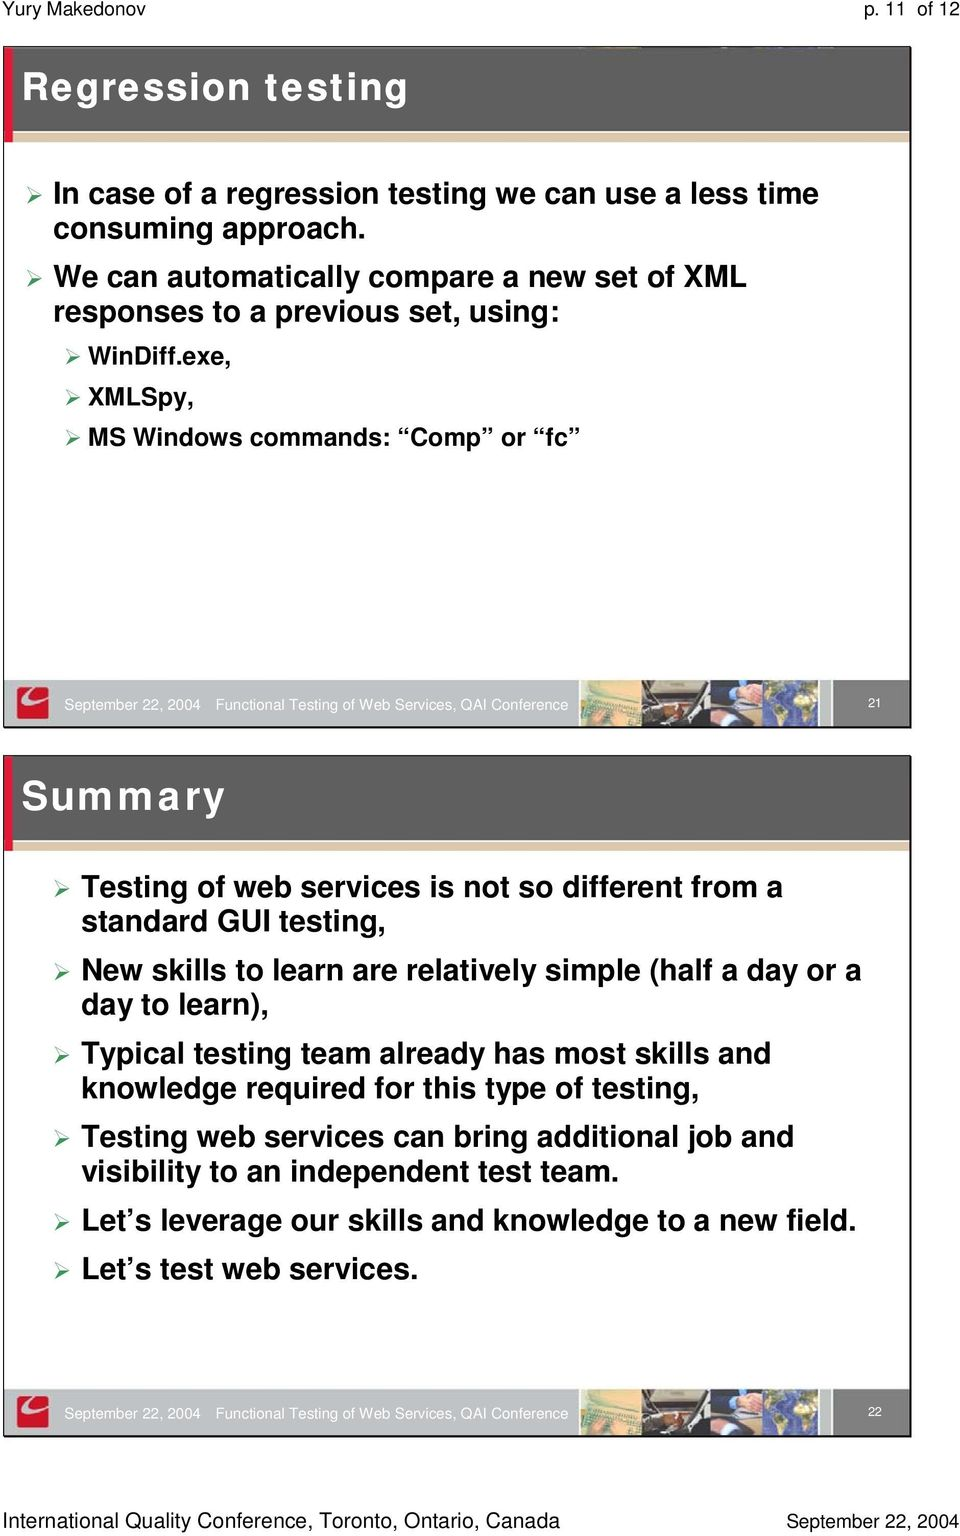 Functional Testing of Web Services - PDF